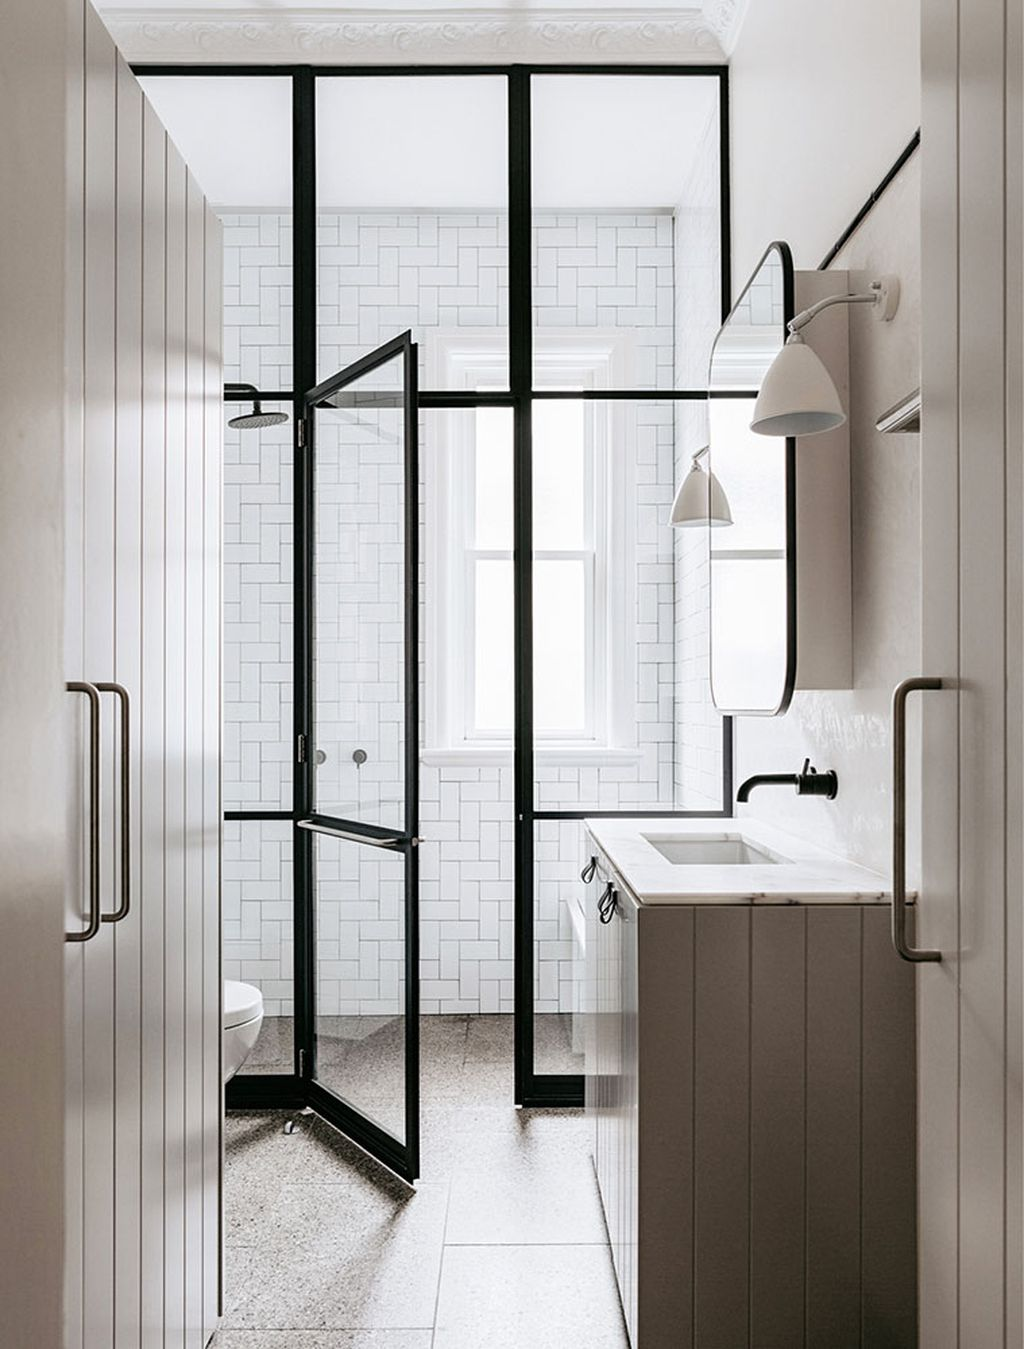 The latest in kitchen and bathroom designs - 9homes